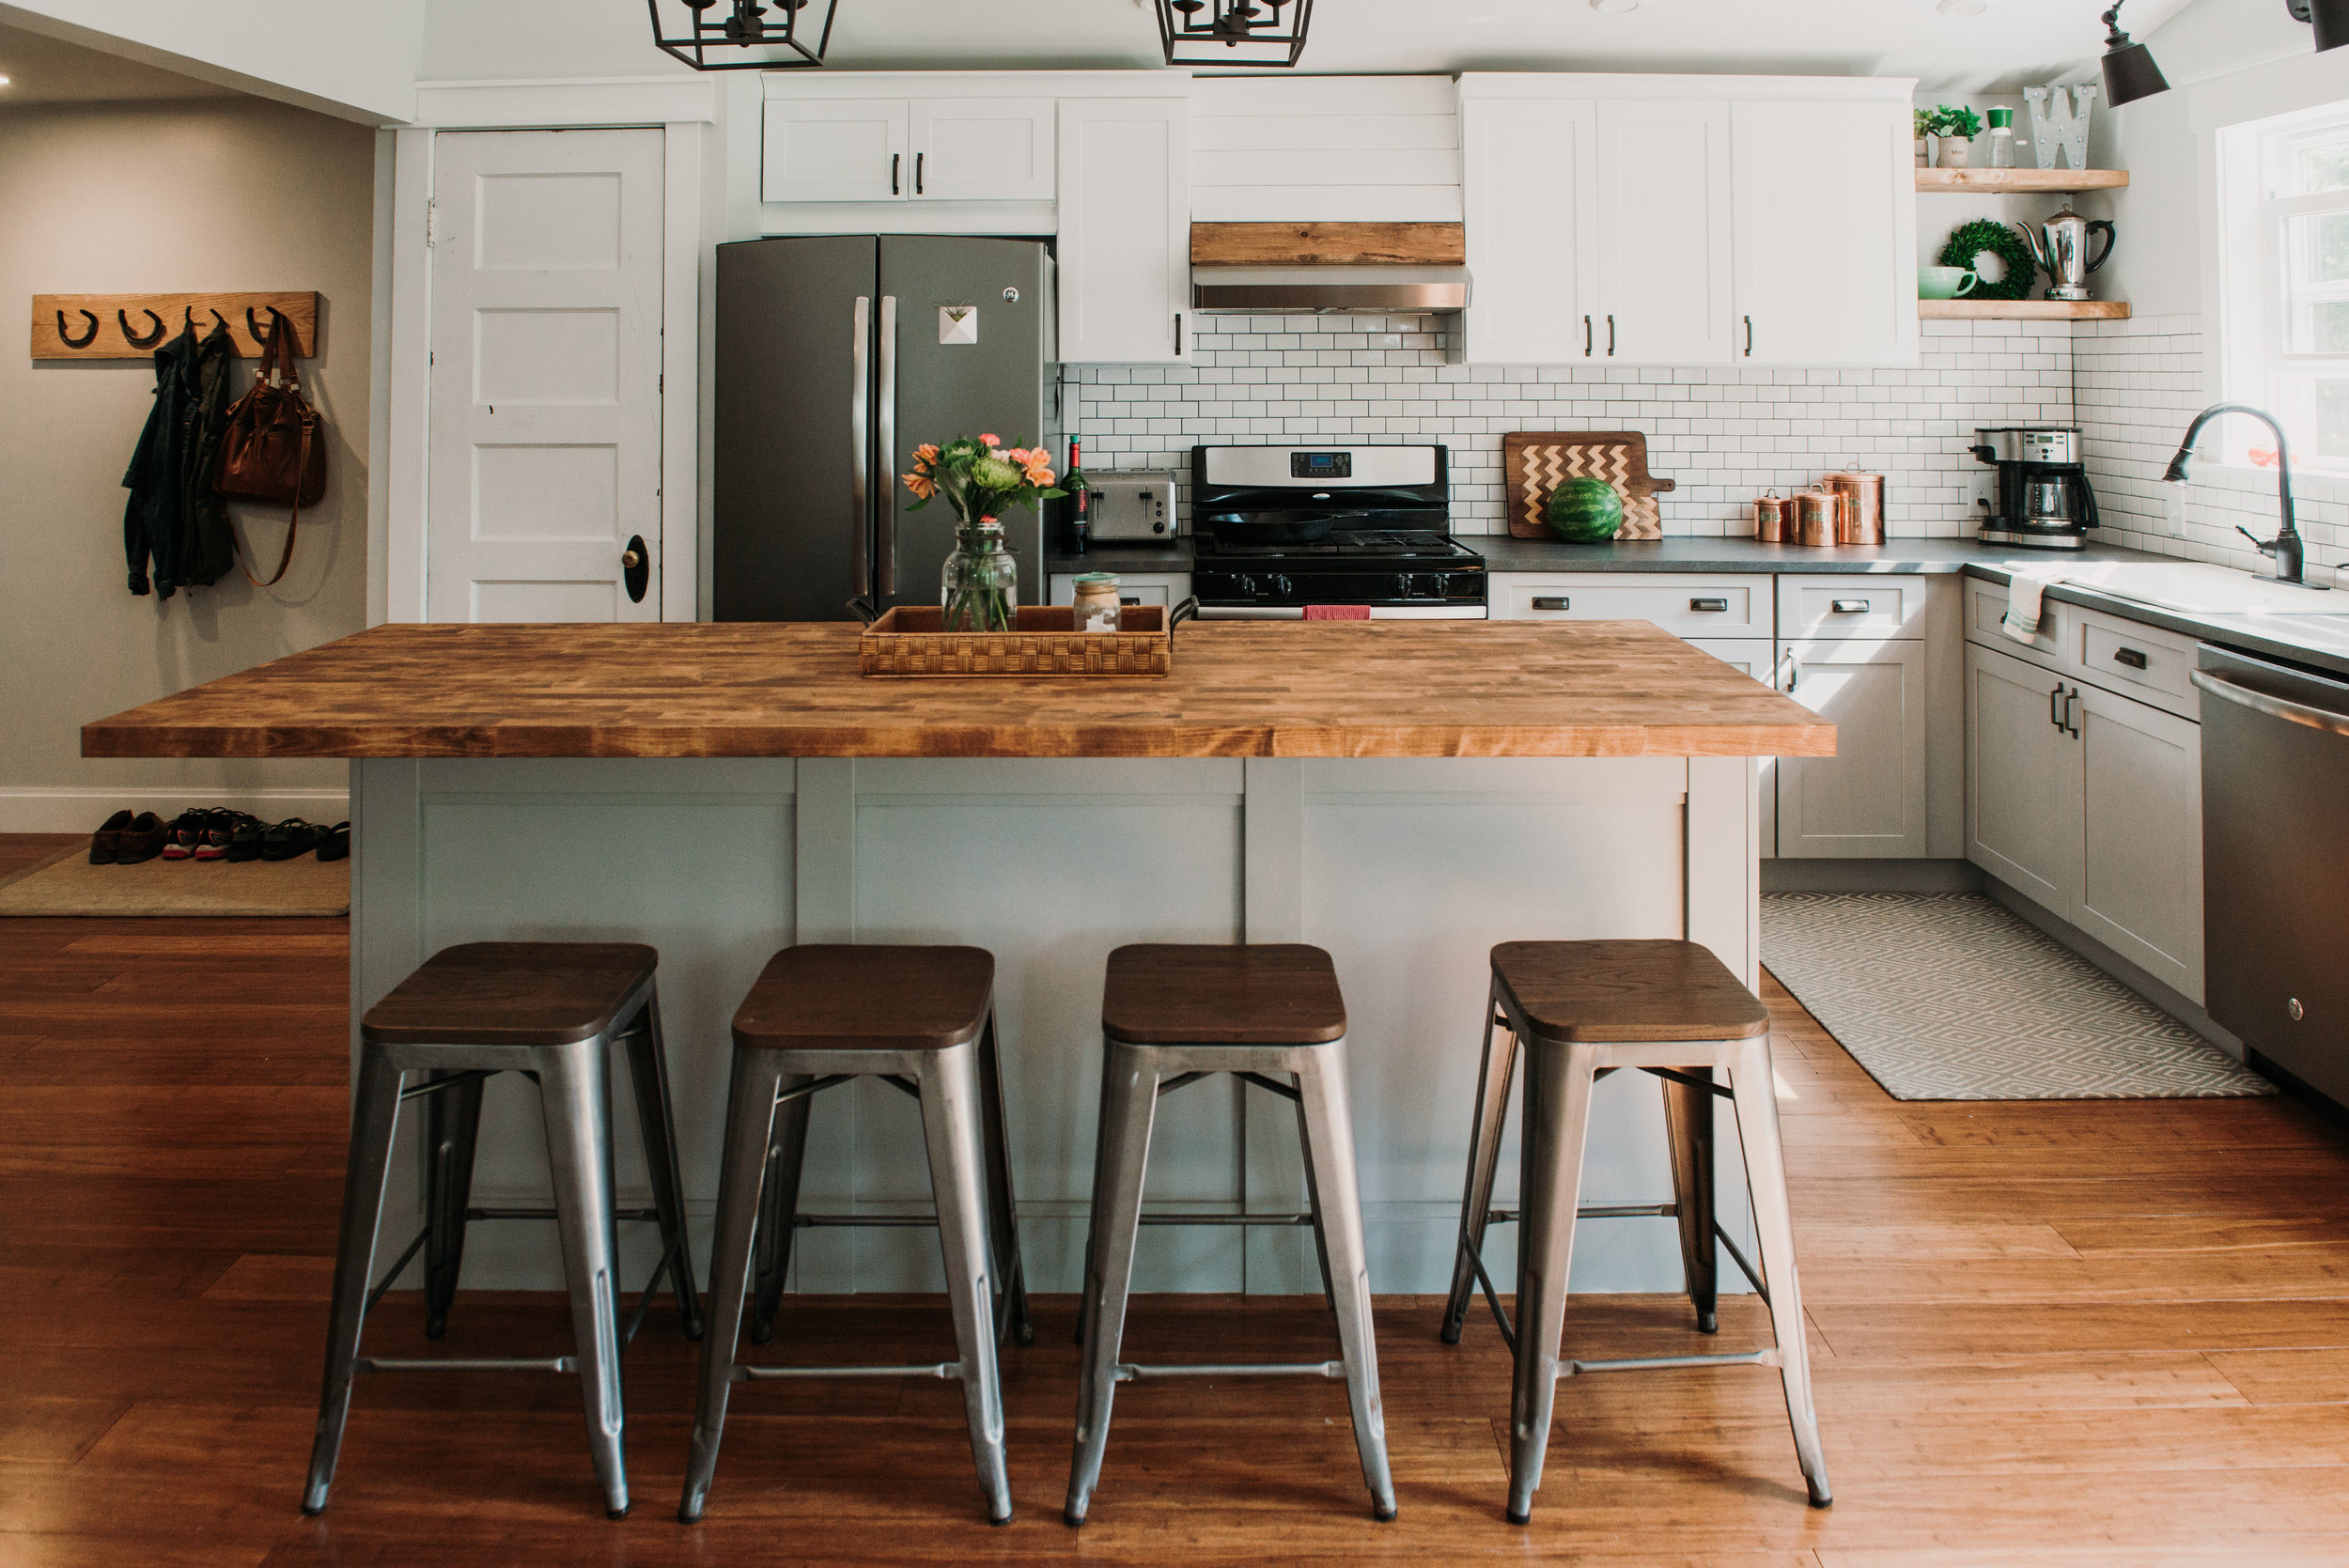 High Quality Kitchen Cabinets - ACME Cabinet Co.